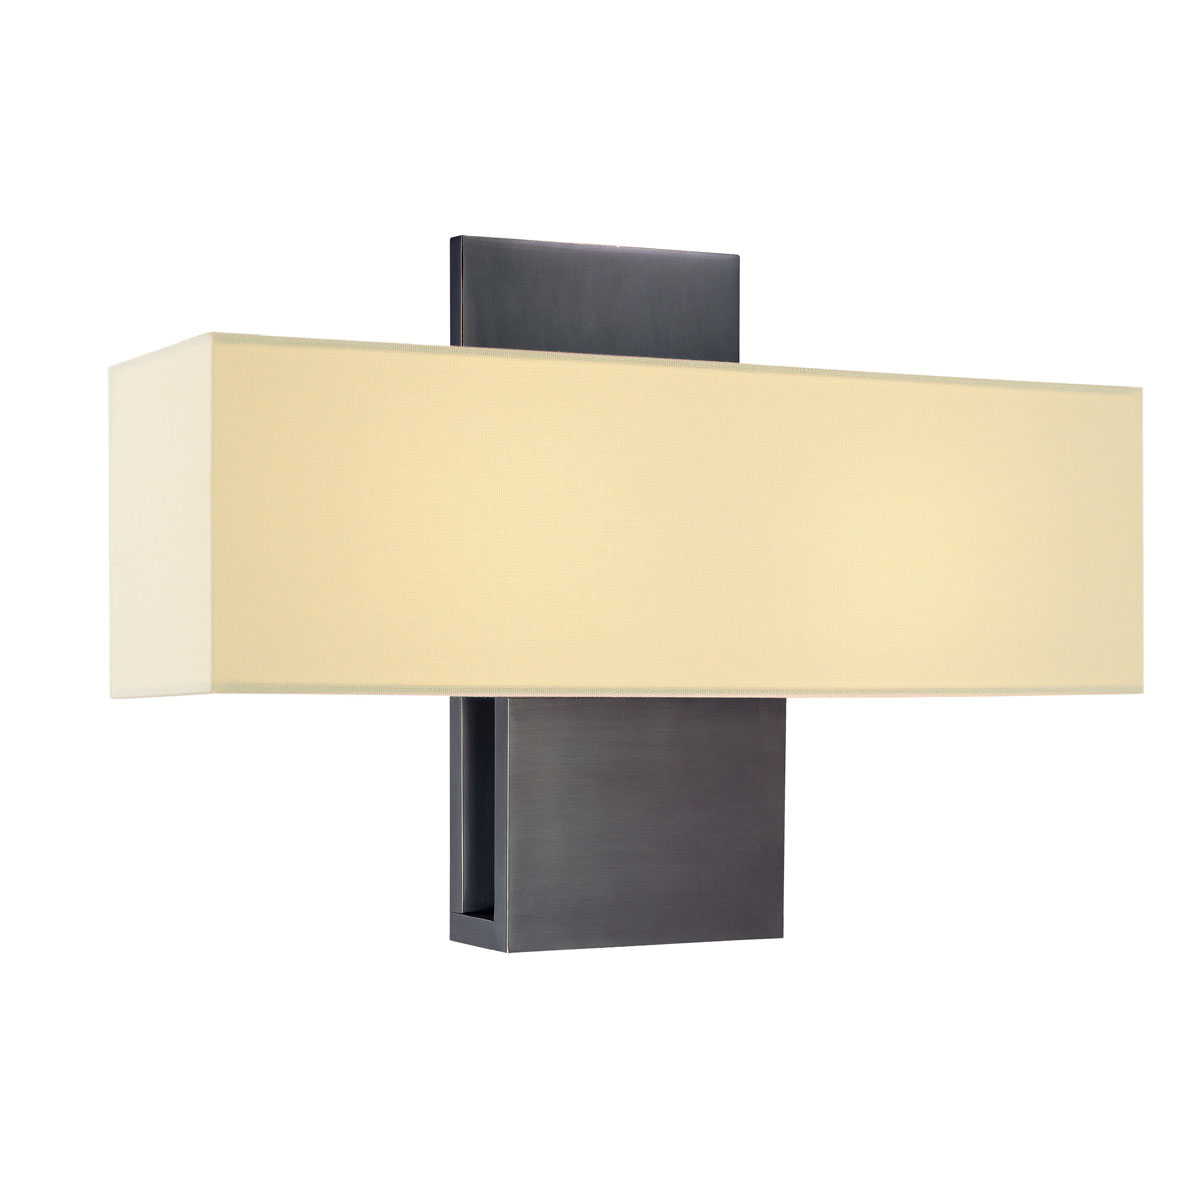 Ombra Fluorescent Sconce